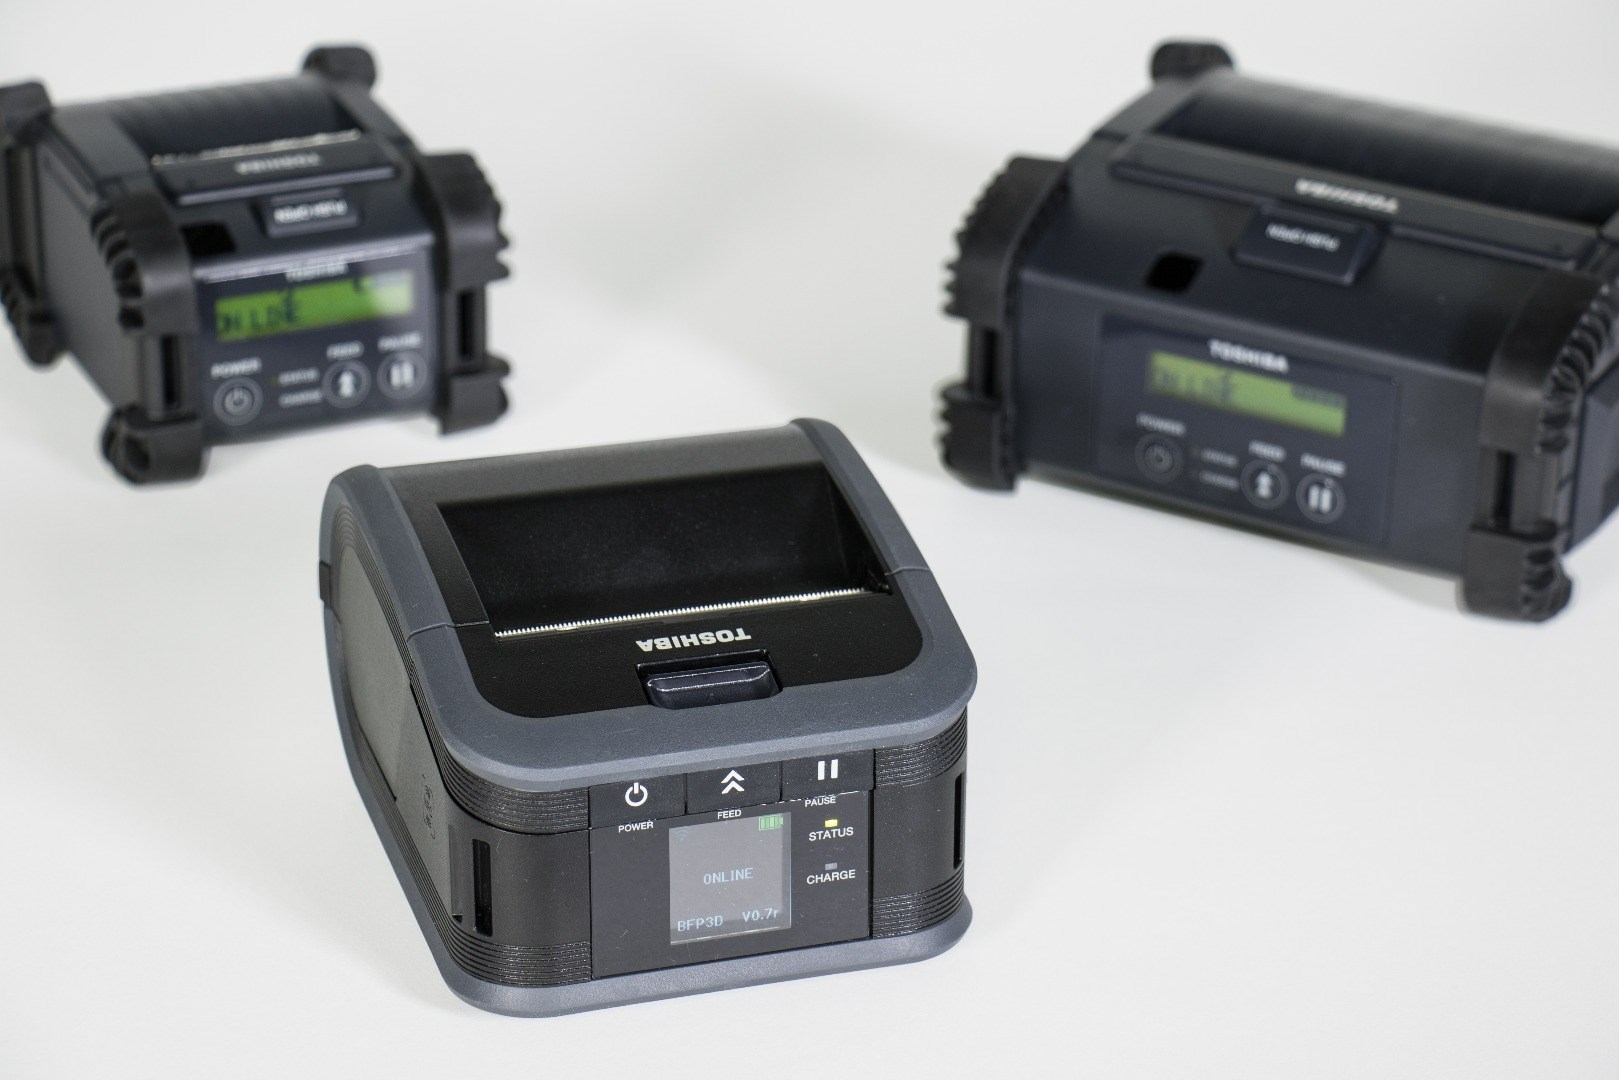 08_B-FP3D_R_three mobile printers.jpg